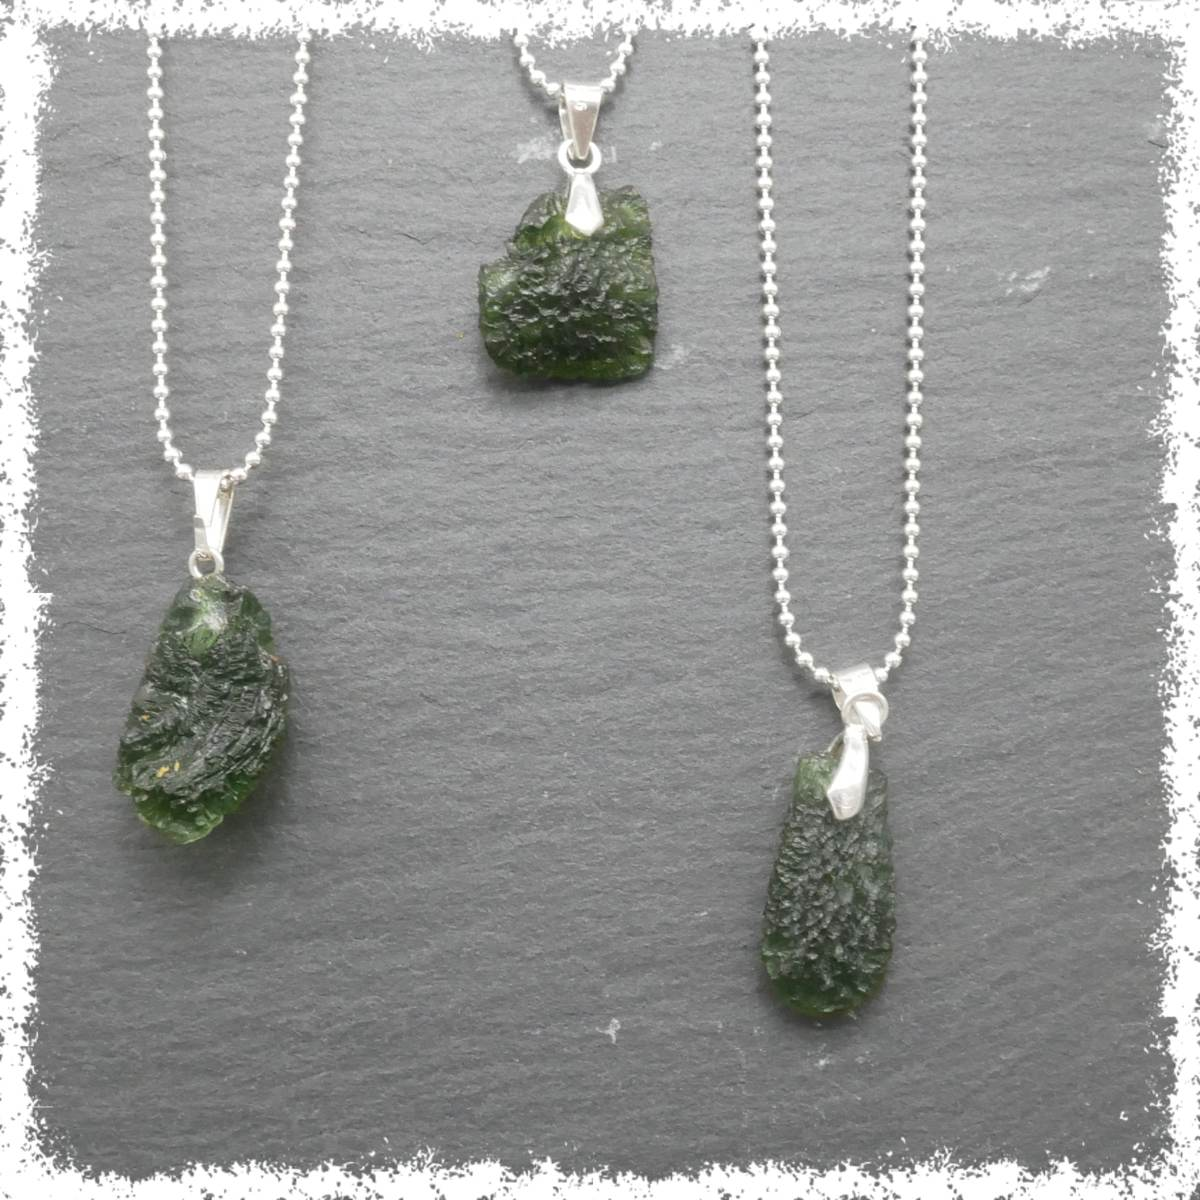 Moldavite pendant on silver chain